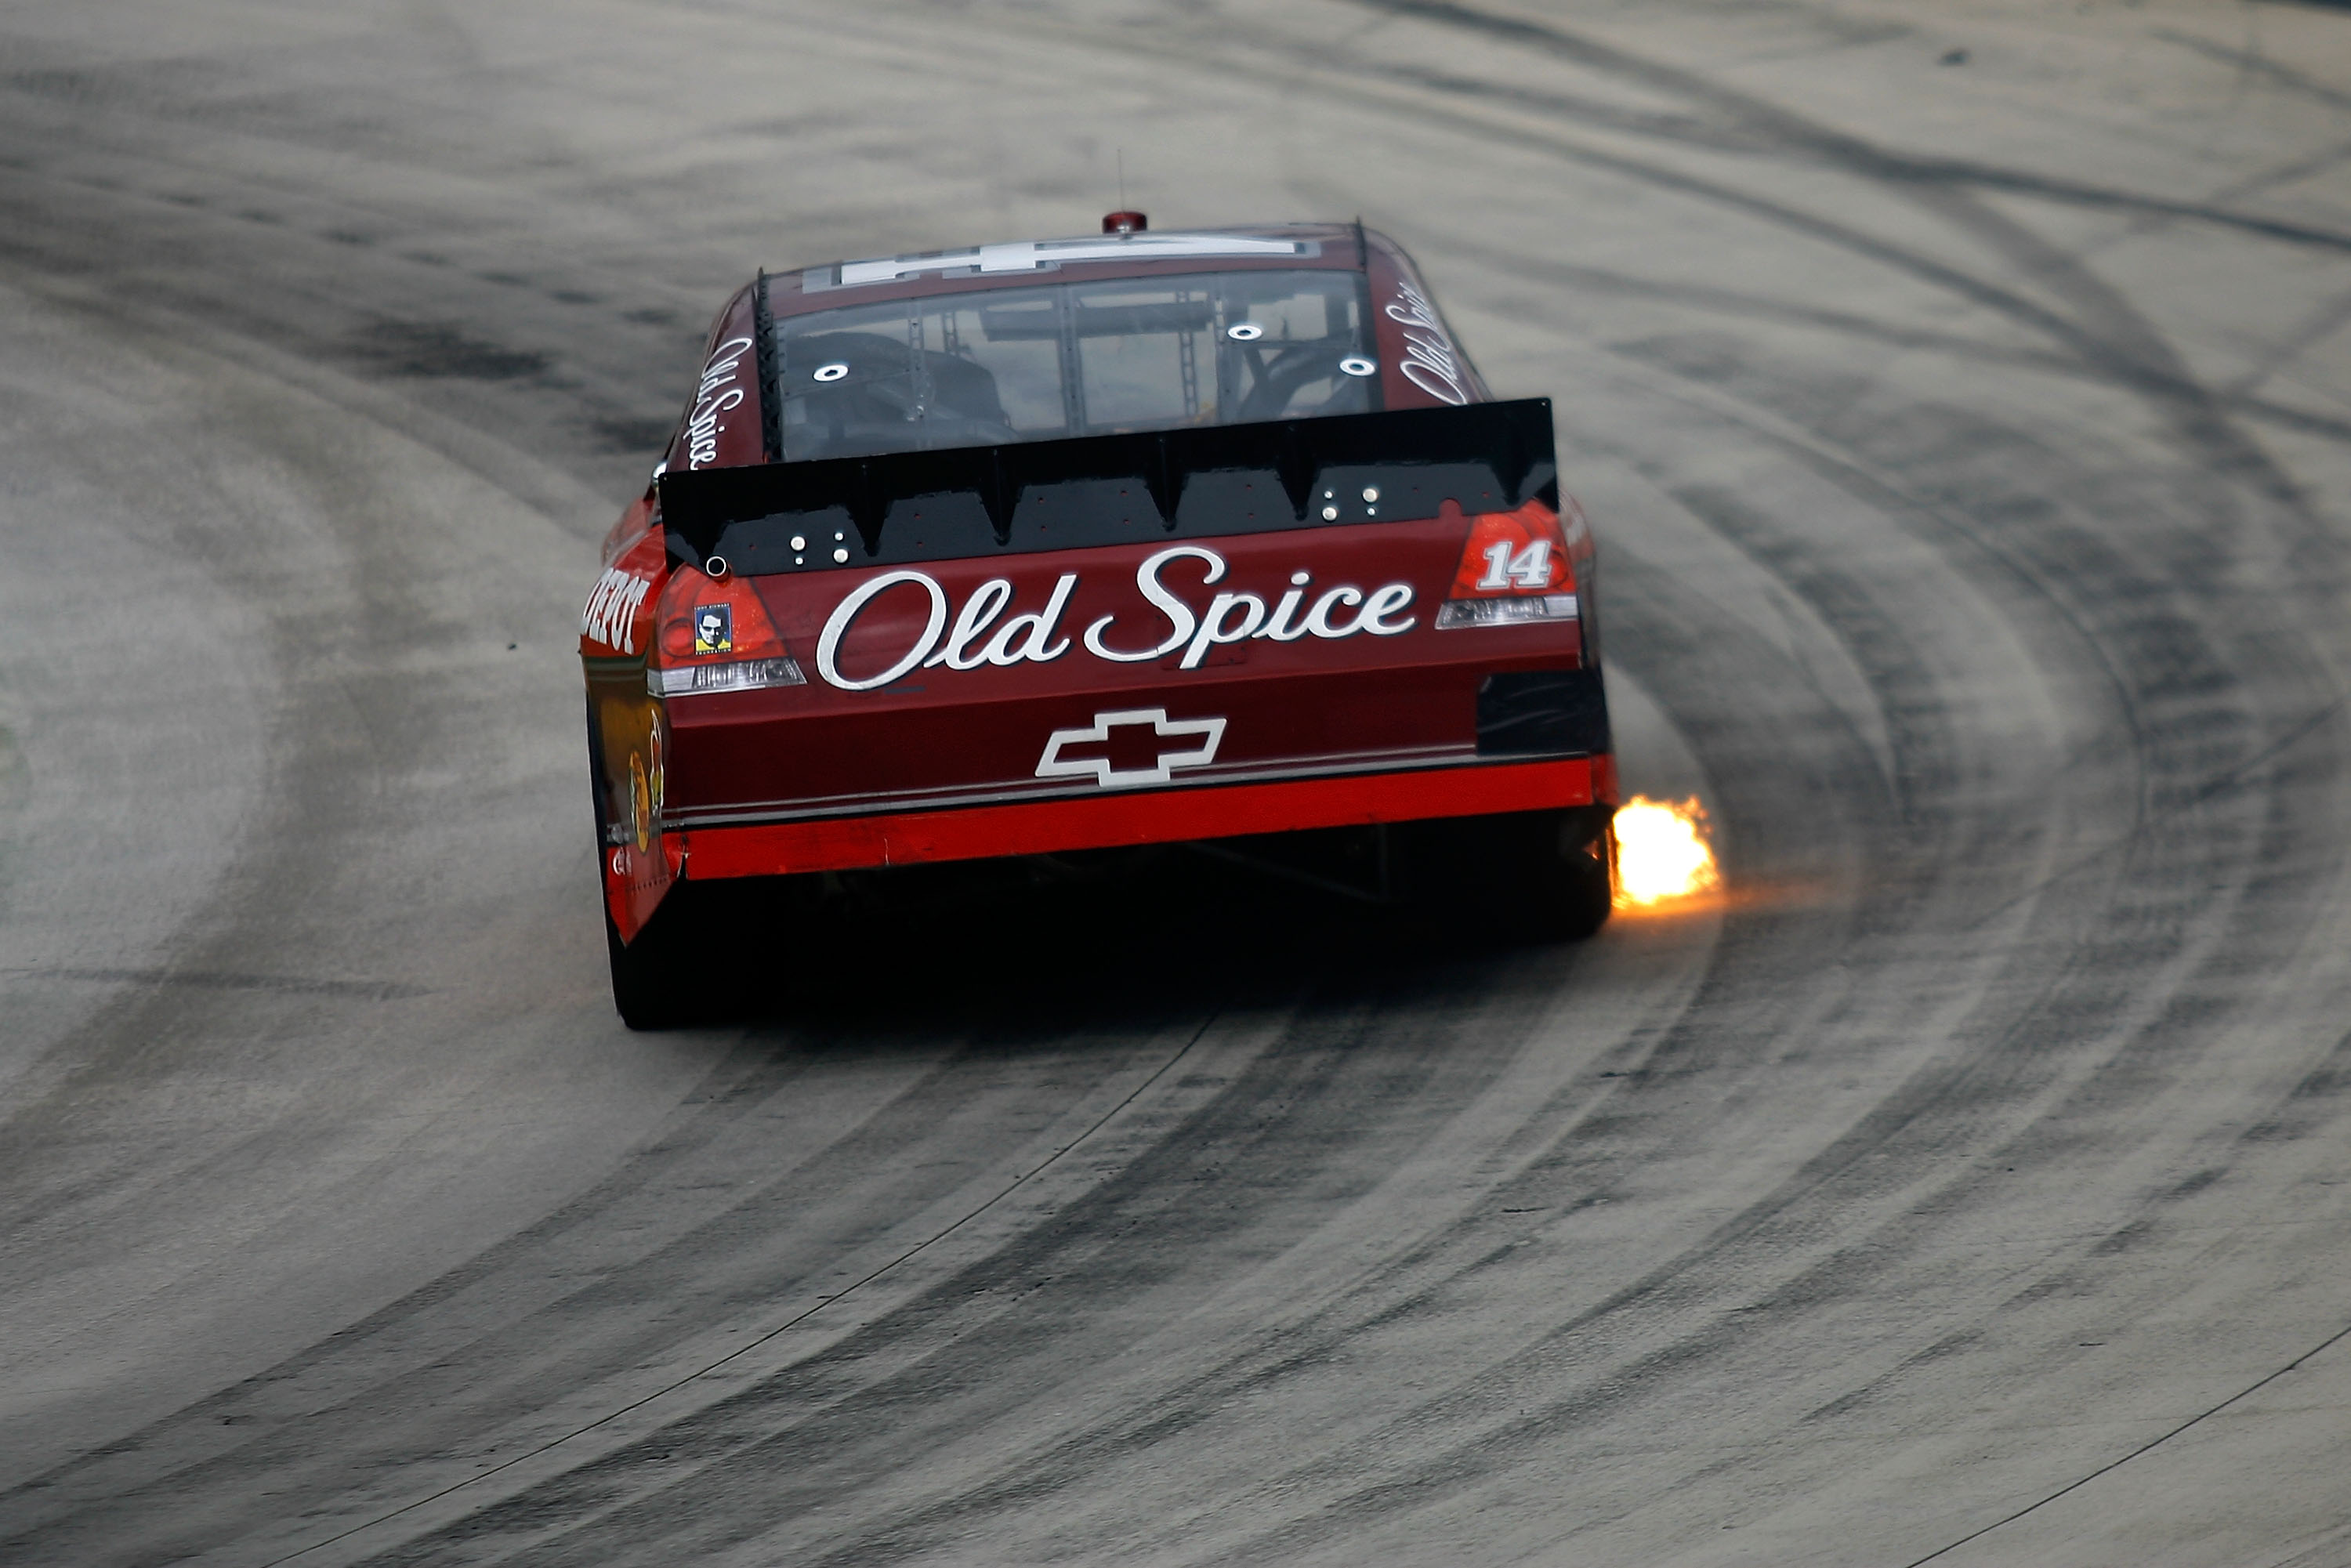 MARTINSVILLE, VA - MARCH 29:  Tony Stewart, driver of the #14 Old Spice/Office Depot Chevrolet races during the NASCAR Sprint Cup Series Goody's Fast Pain Relief 500 at Martinsville Speedway on March 29, 2010 in Martinsville, Virginia.  (Photo by Jason Sm